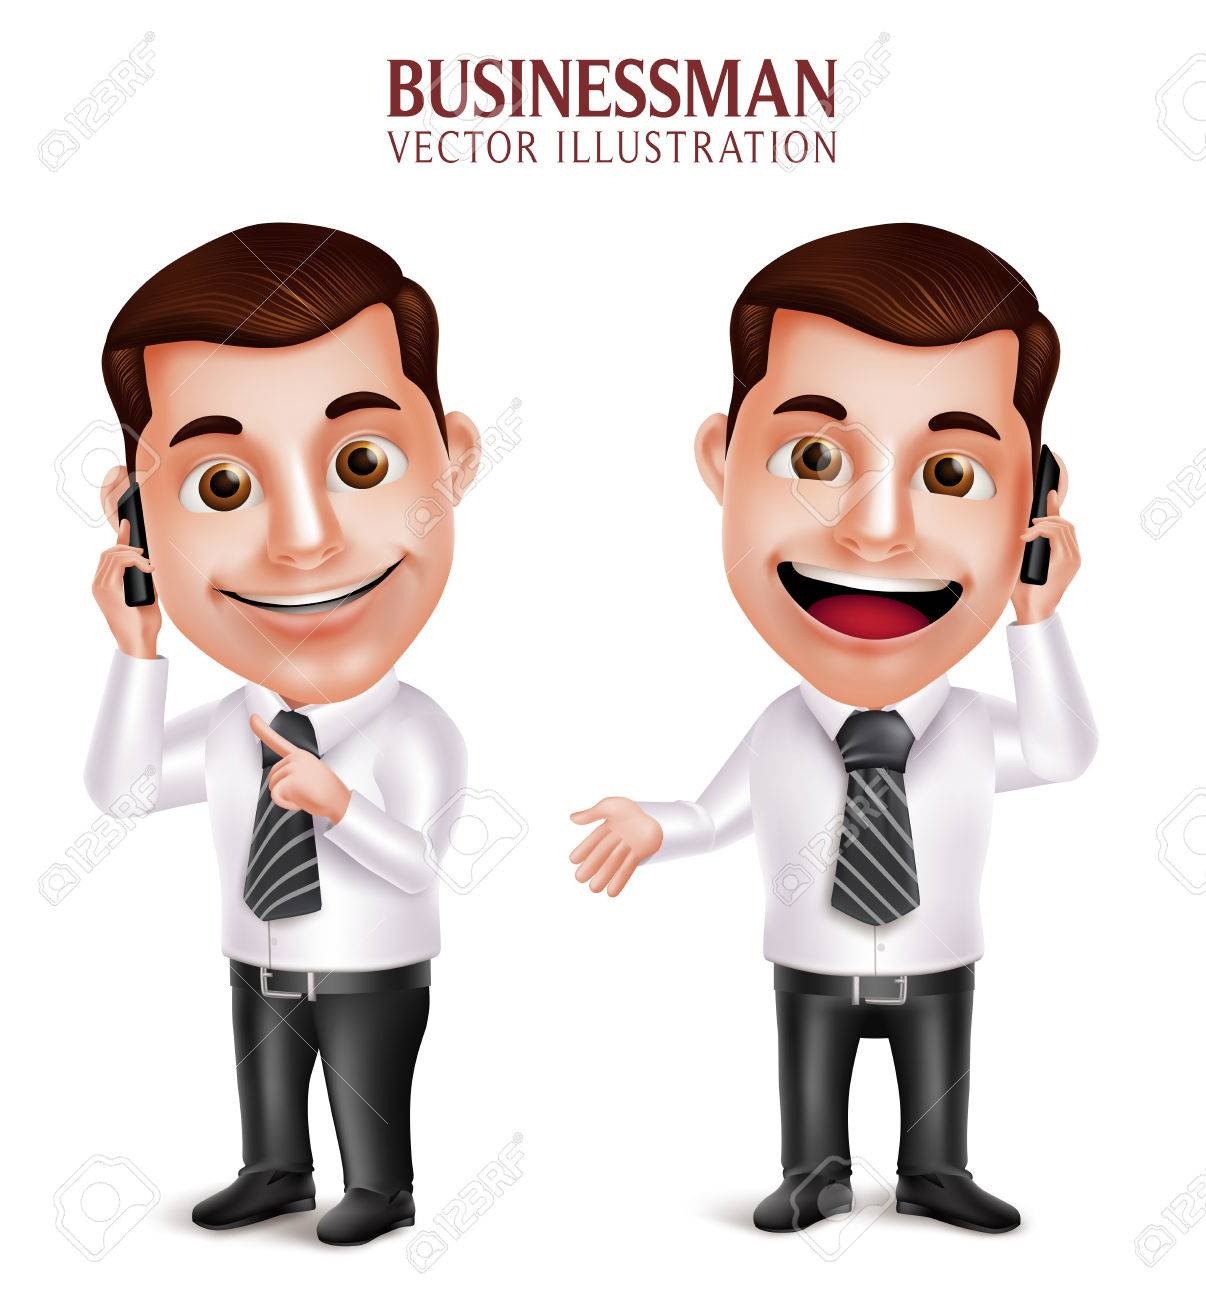 3D Realistic Professional Business Man Vector Character Holding Mobile Phone Happy Talking Isolated in White Background. Vector Illustration - 49632349